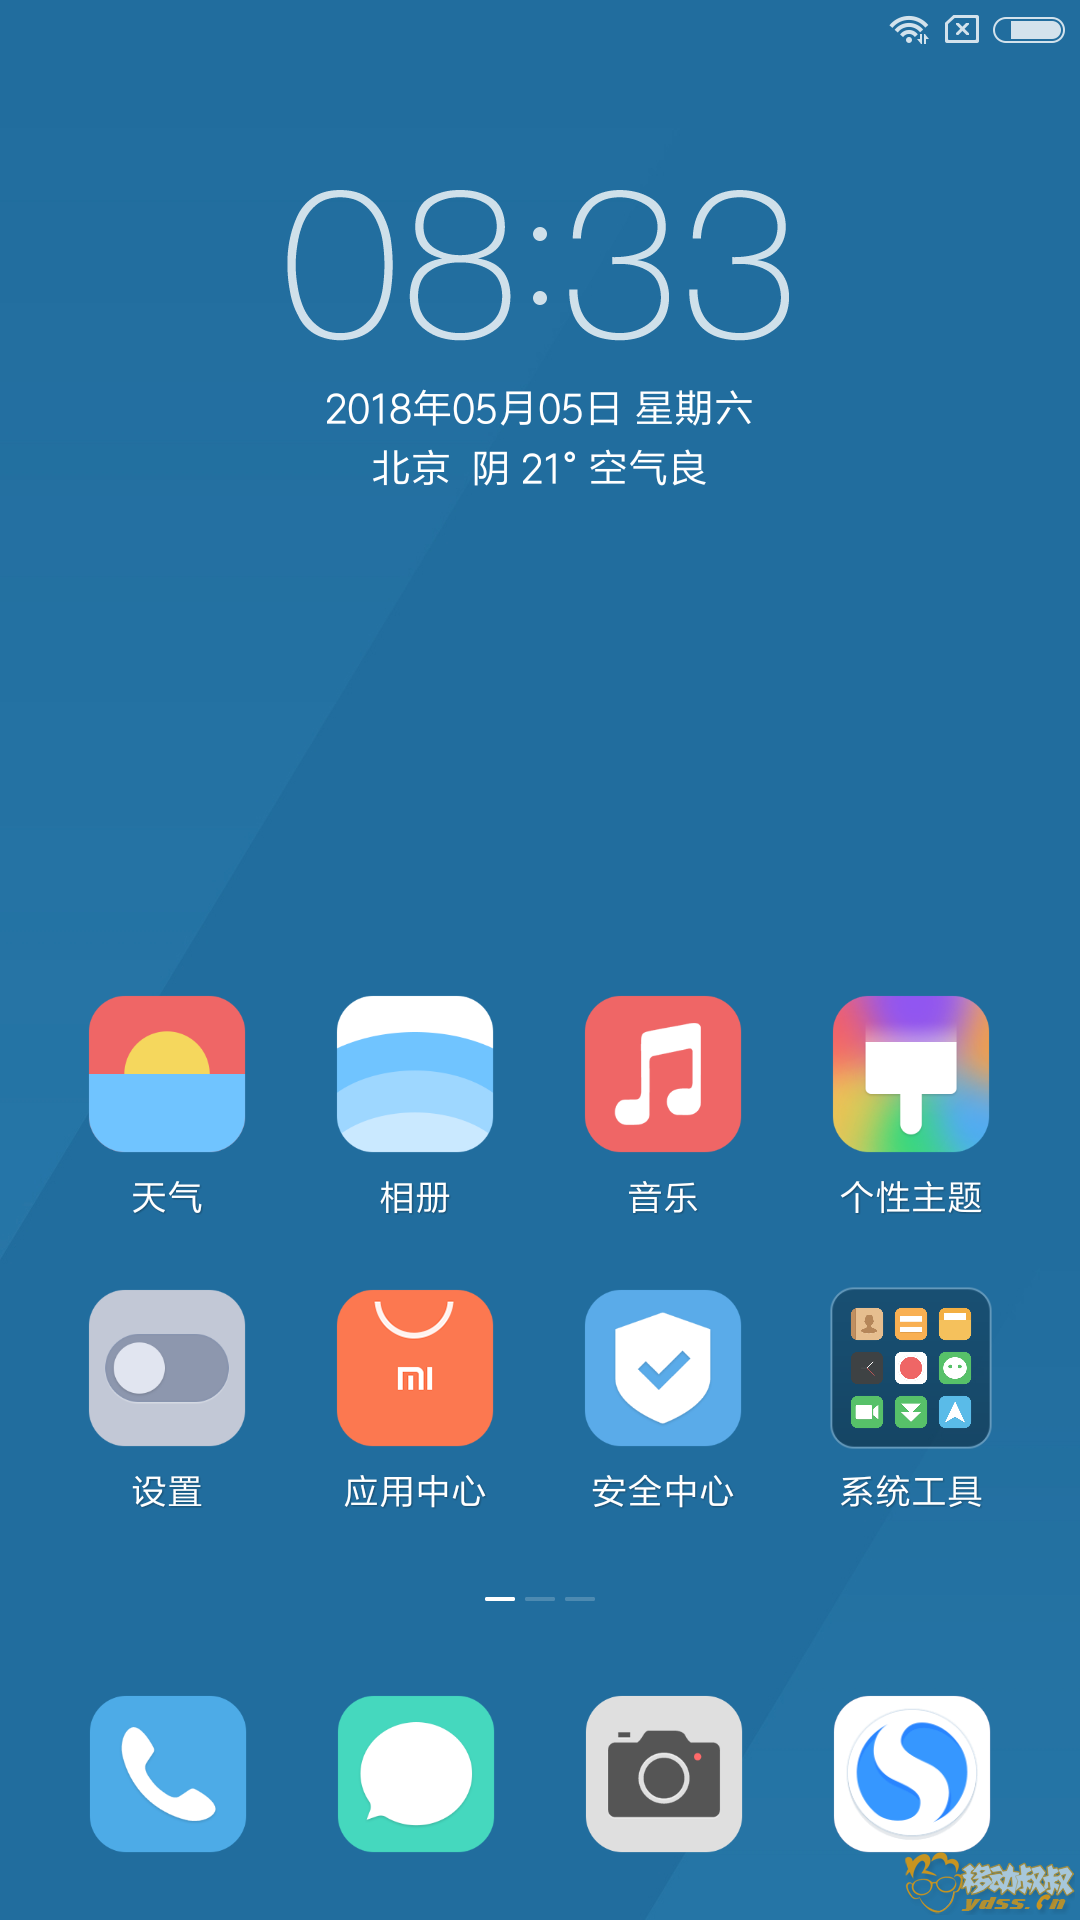 Screenshot_2018-05-05-20-33-37-761_com.miui.home.png